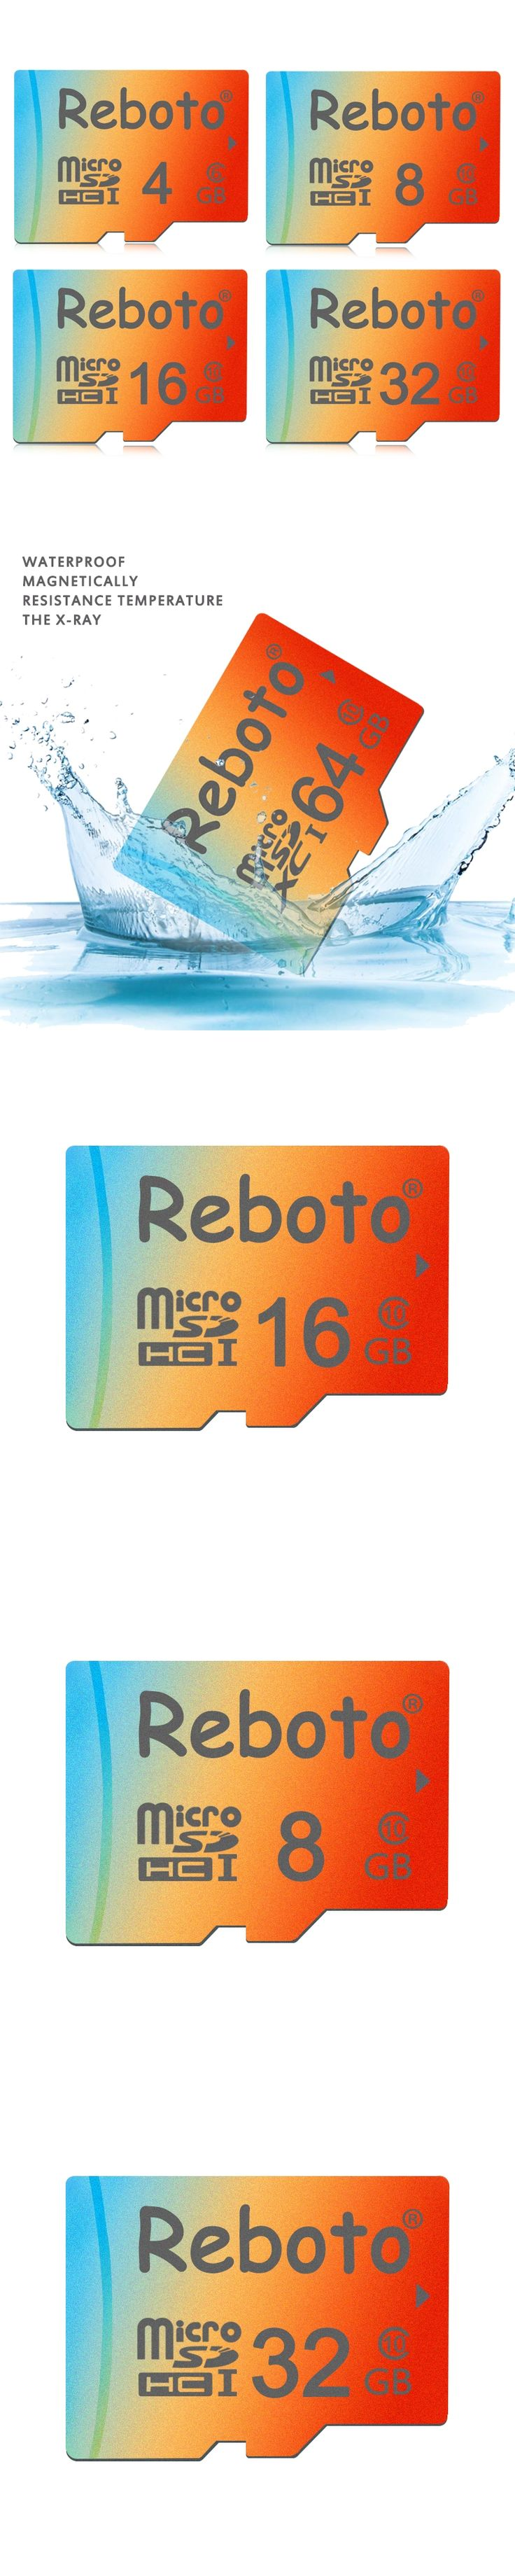 Reboto Memory Card 64GB 32GB 16GB 8GB Micro SD Card Class 10 UHS-1 4GB Class6 Microsd for Phone Colorful TF Card Pen Drive